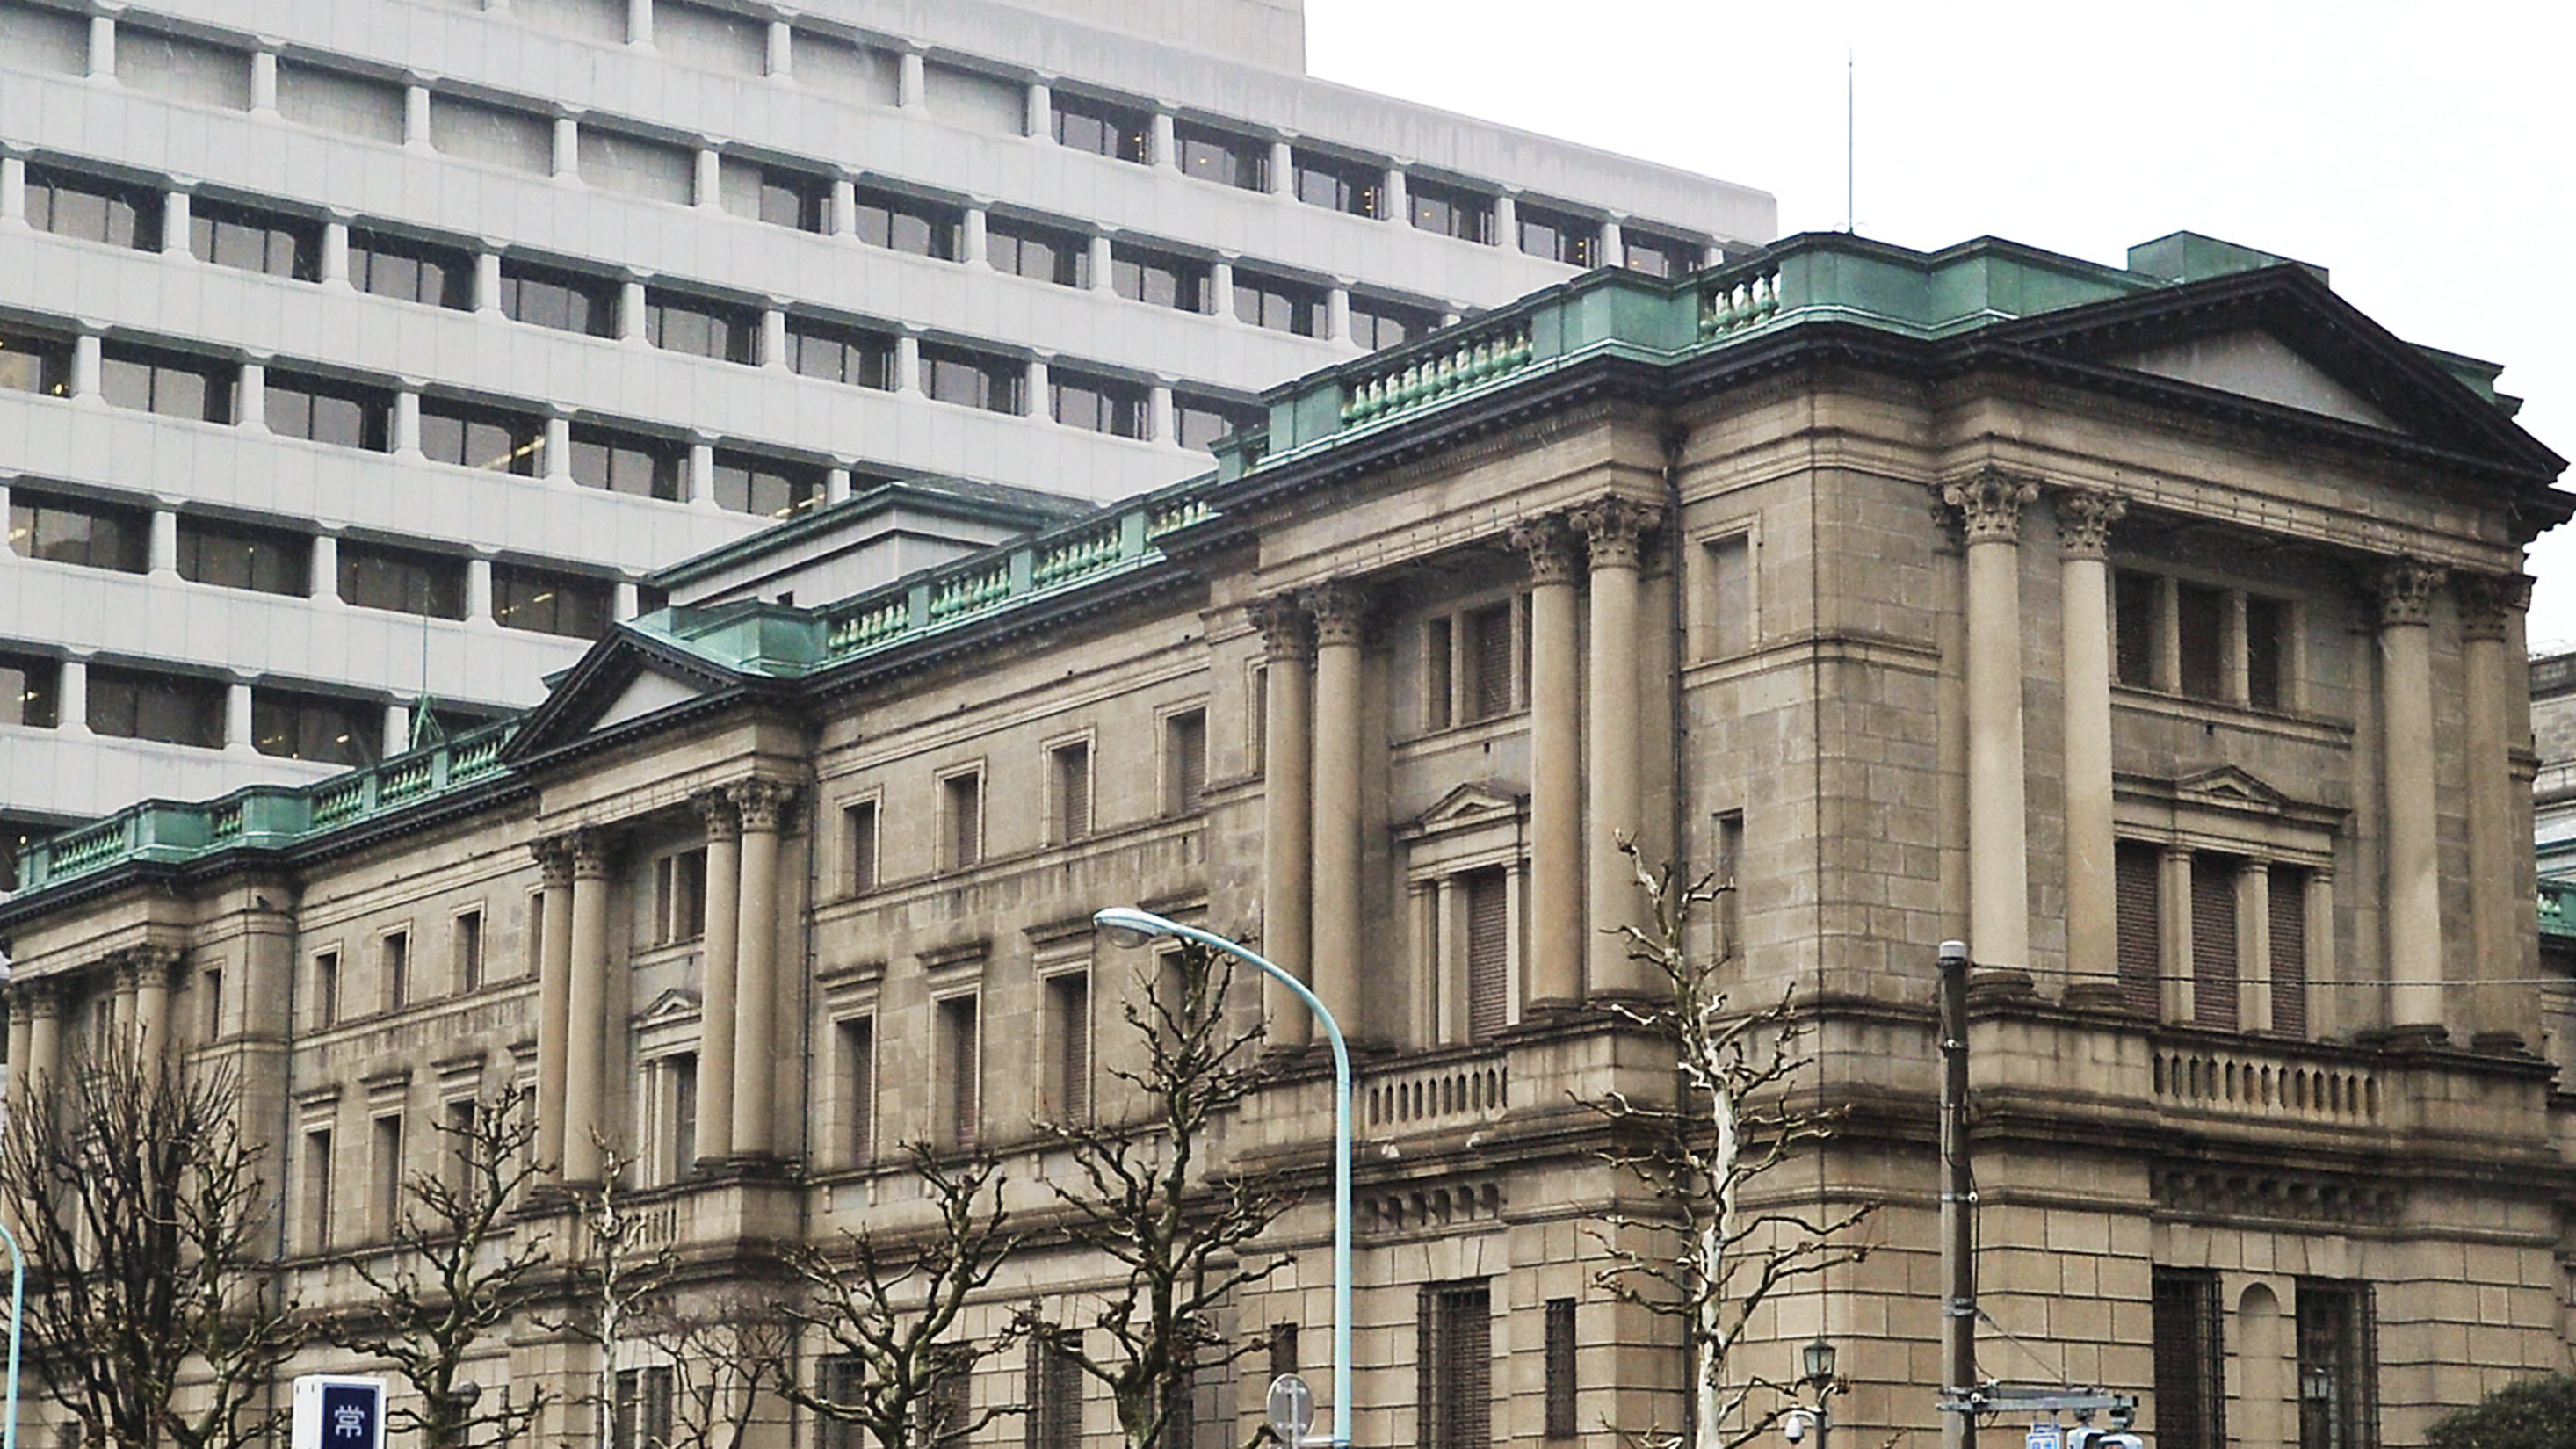 nikkei.com - Staff Writer - BOJ to keep 'extremely low' interest rates until spring 2020